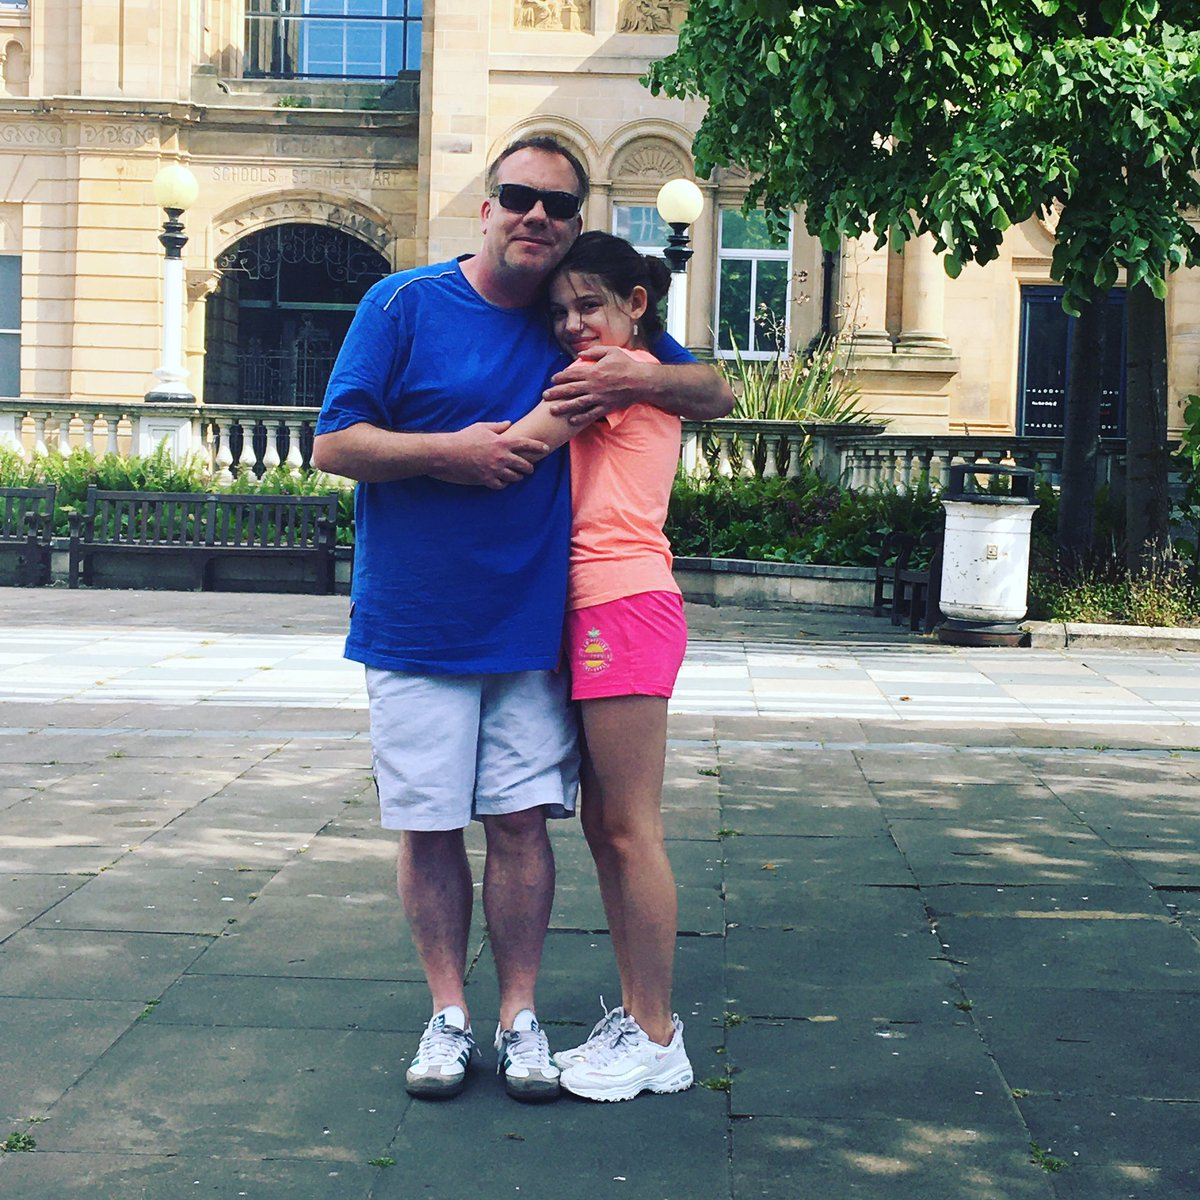 Out in the sunshine with her Dad and then back home learning two songs to cover!  #MondayMotivation pic.twitter.com/tL3SZtQYBT